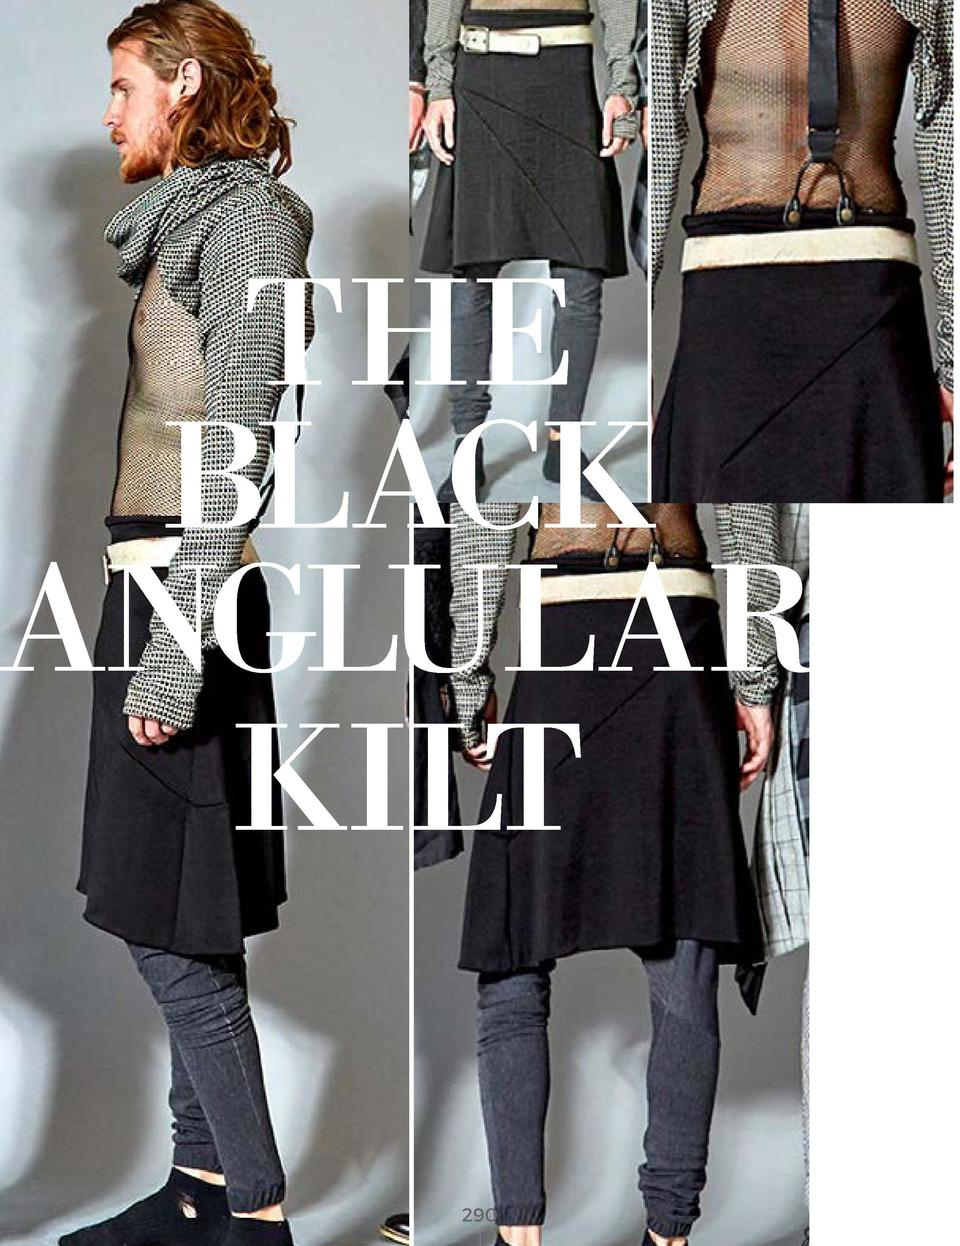 THE BLACK ANGLULAR KILT BLACK POLY COTTON FABRIC WITH WHITE LEATHER BELT       290